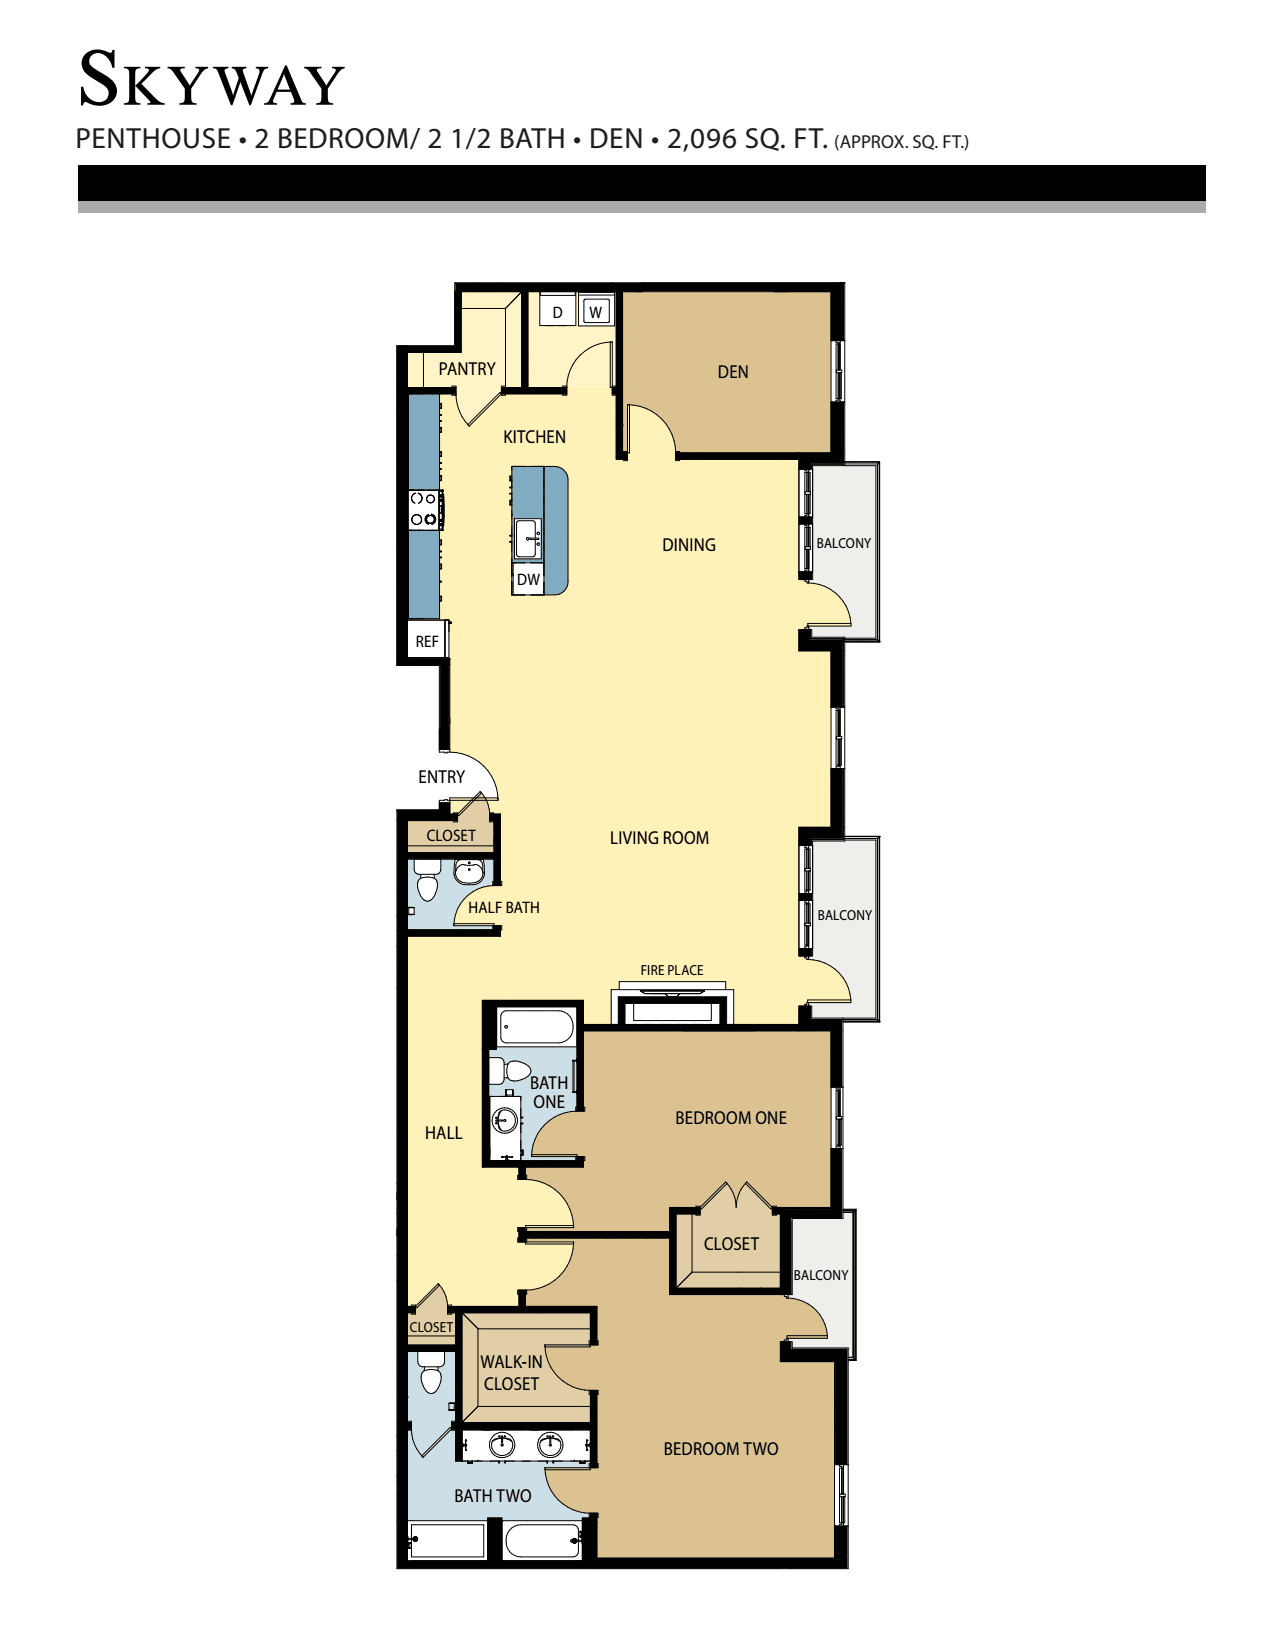 Skyway floor plan - 2 Bed w/ Den / 2 Bath (2,096 Sq Ft)